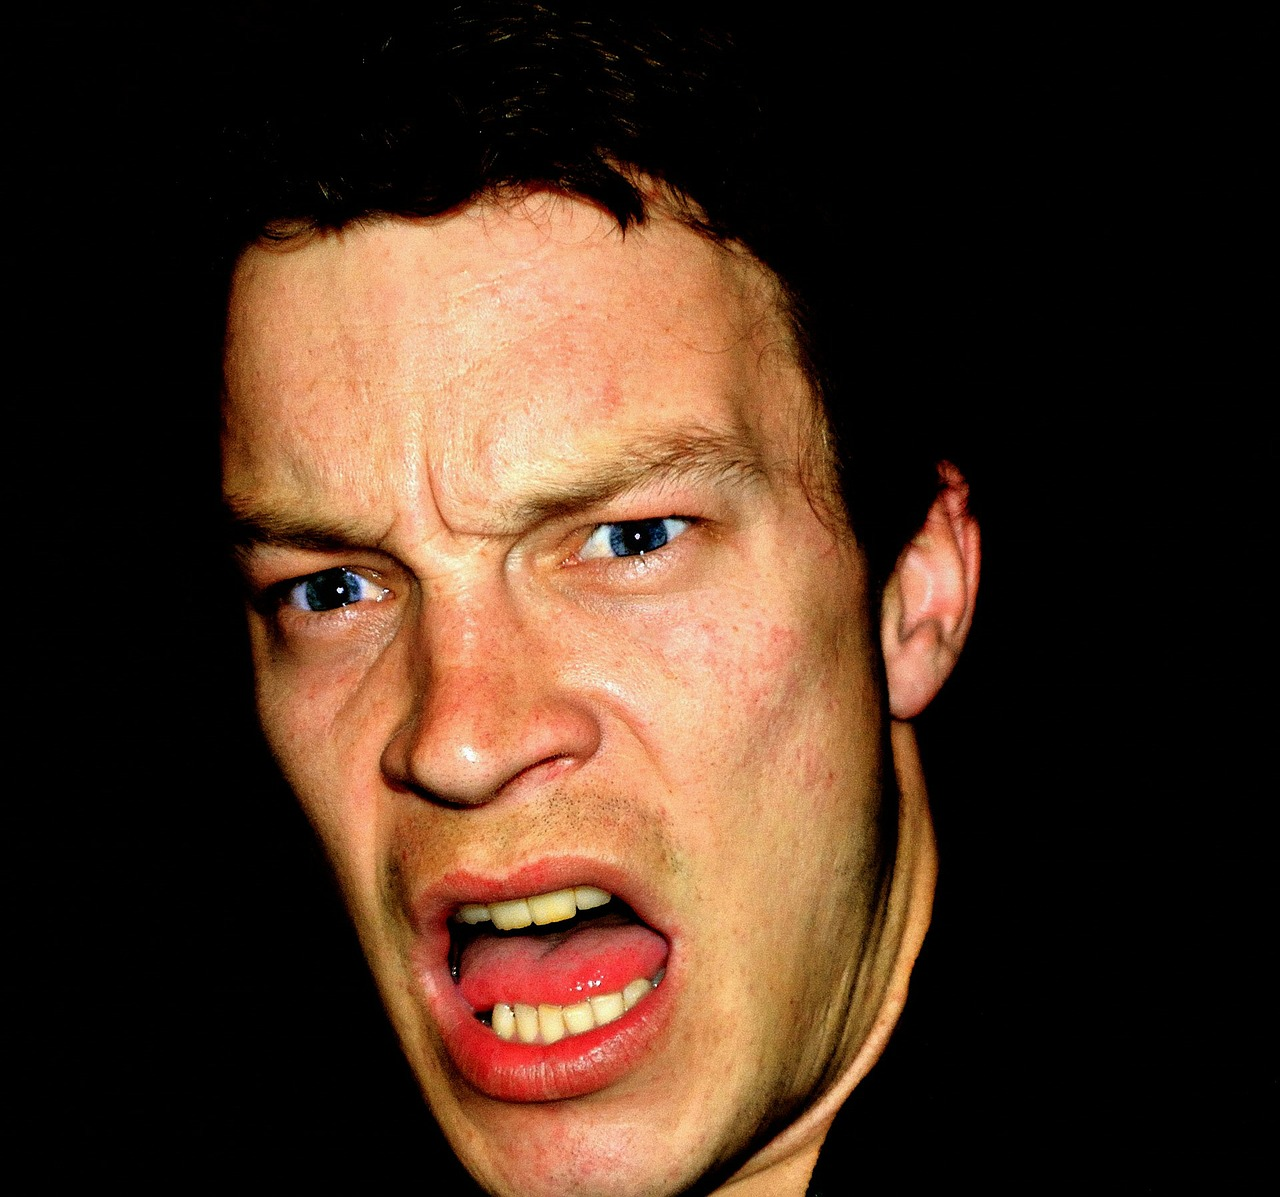 Irrational anger outbursts